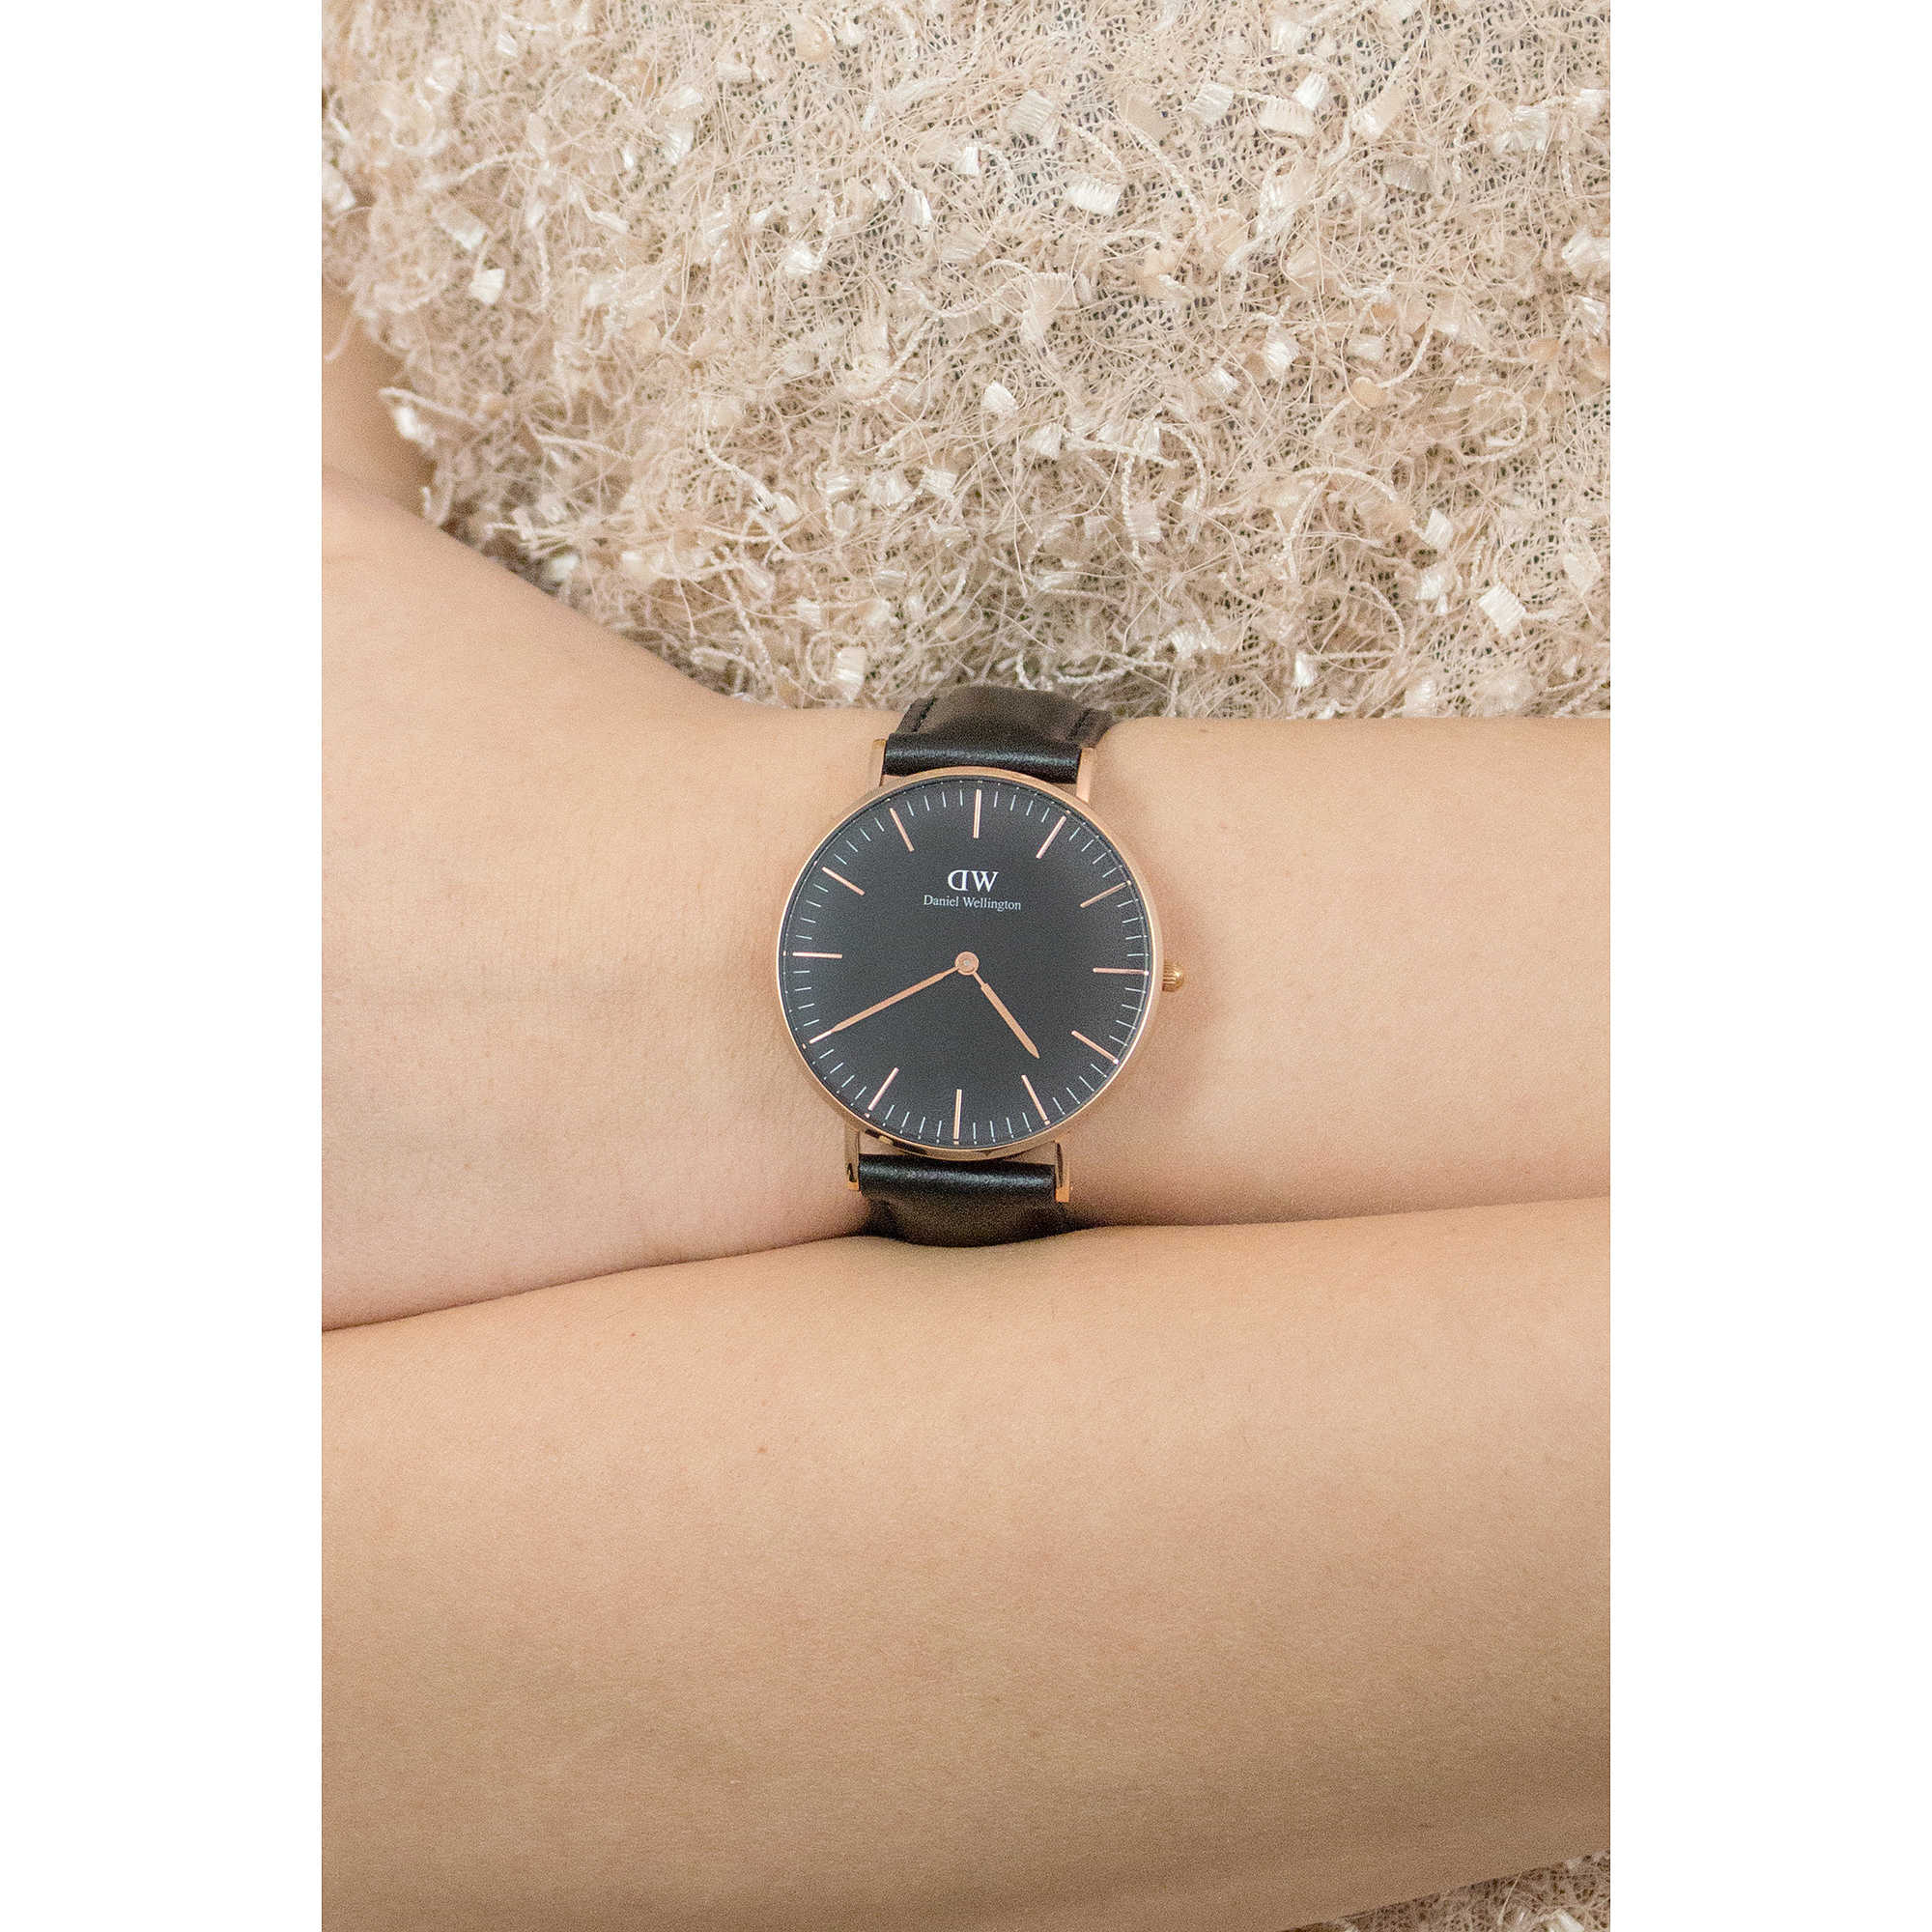 Favorito watch only time woman Daniel Wellington Classic DW00100139 only  ZU03